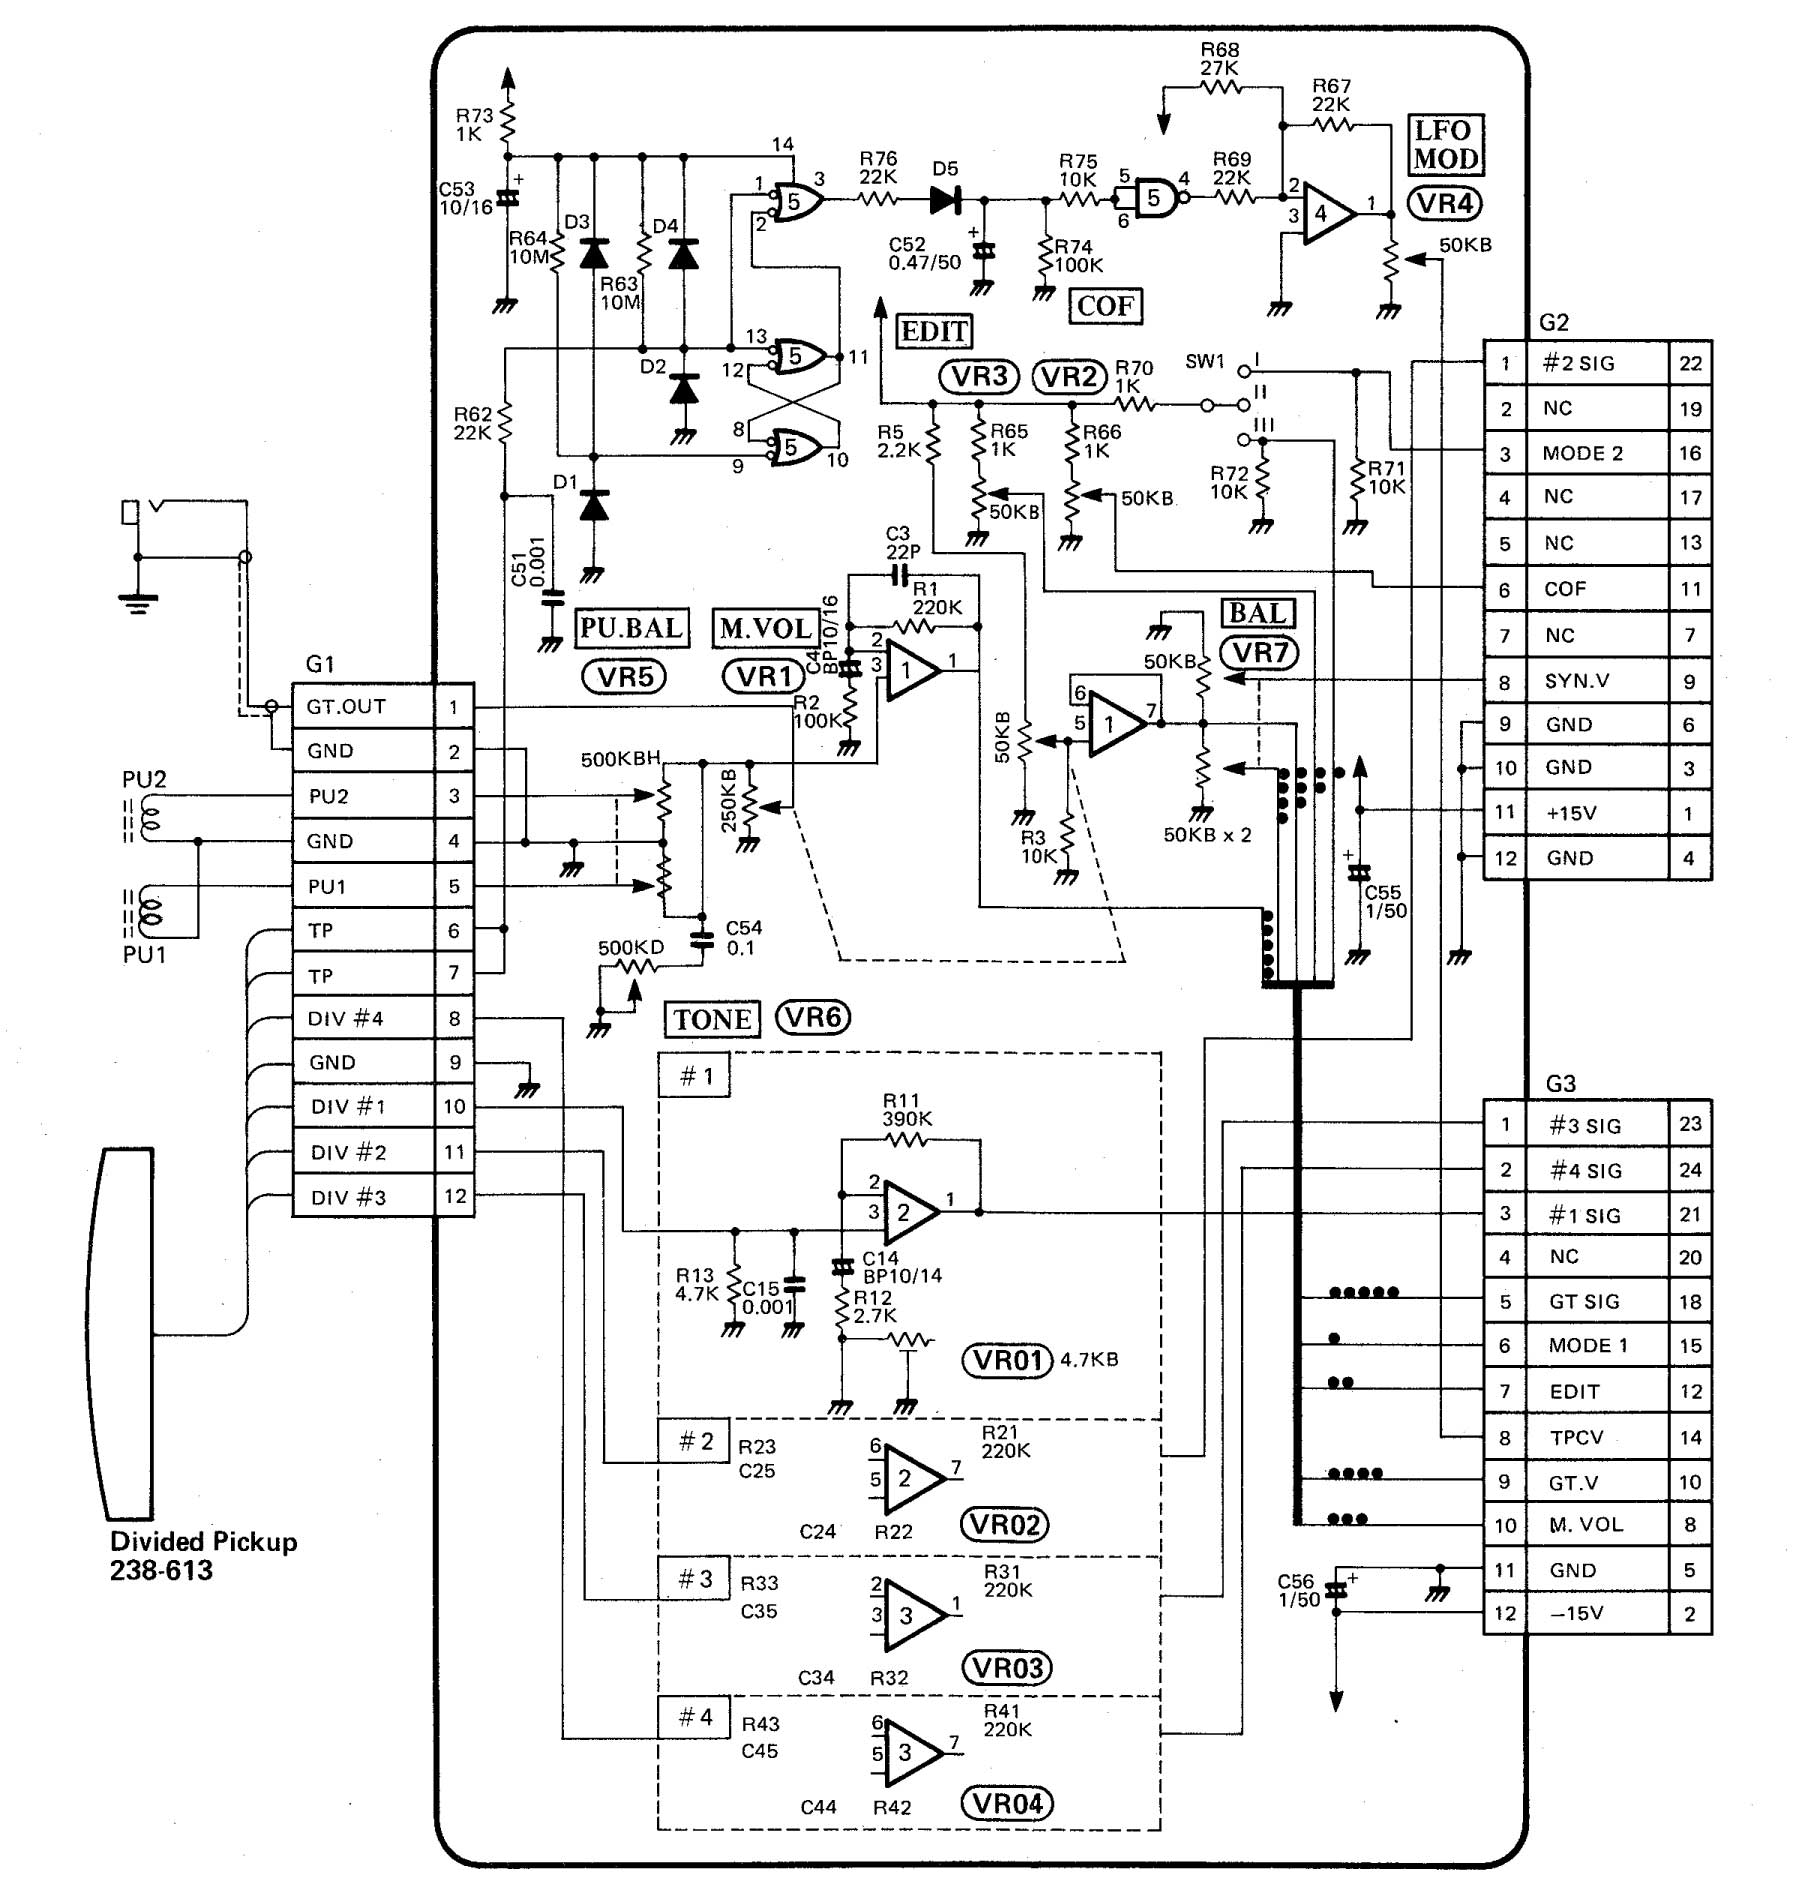 Honda Insight Fuse Box Electrical Wiring Diagrams • Wiring